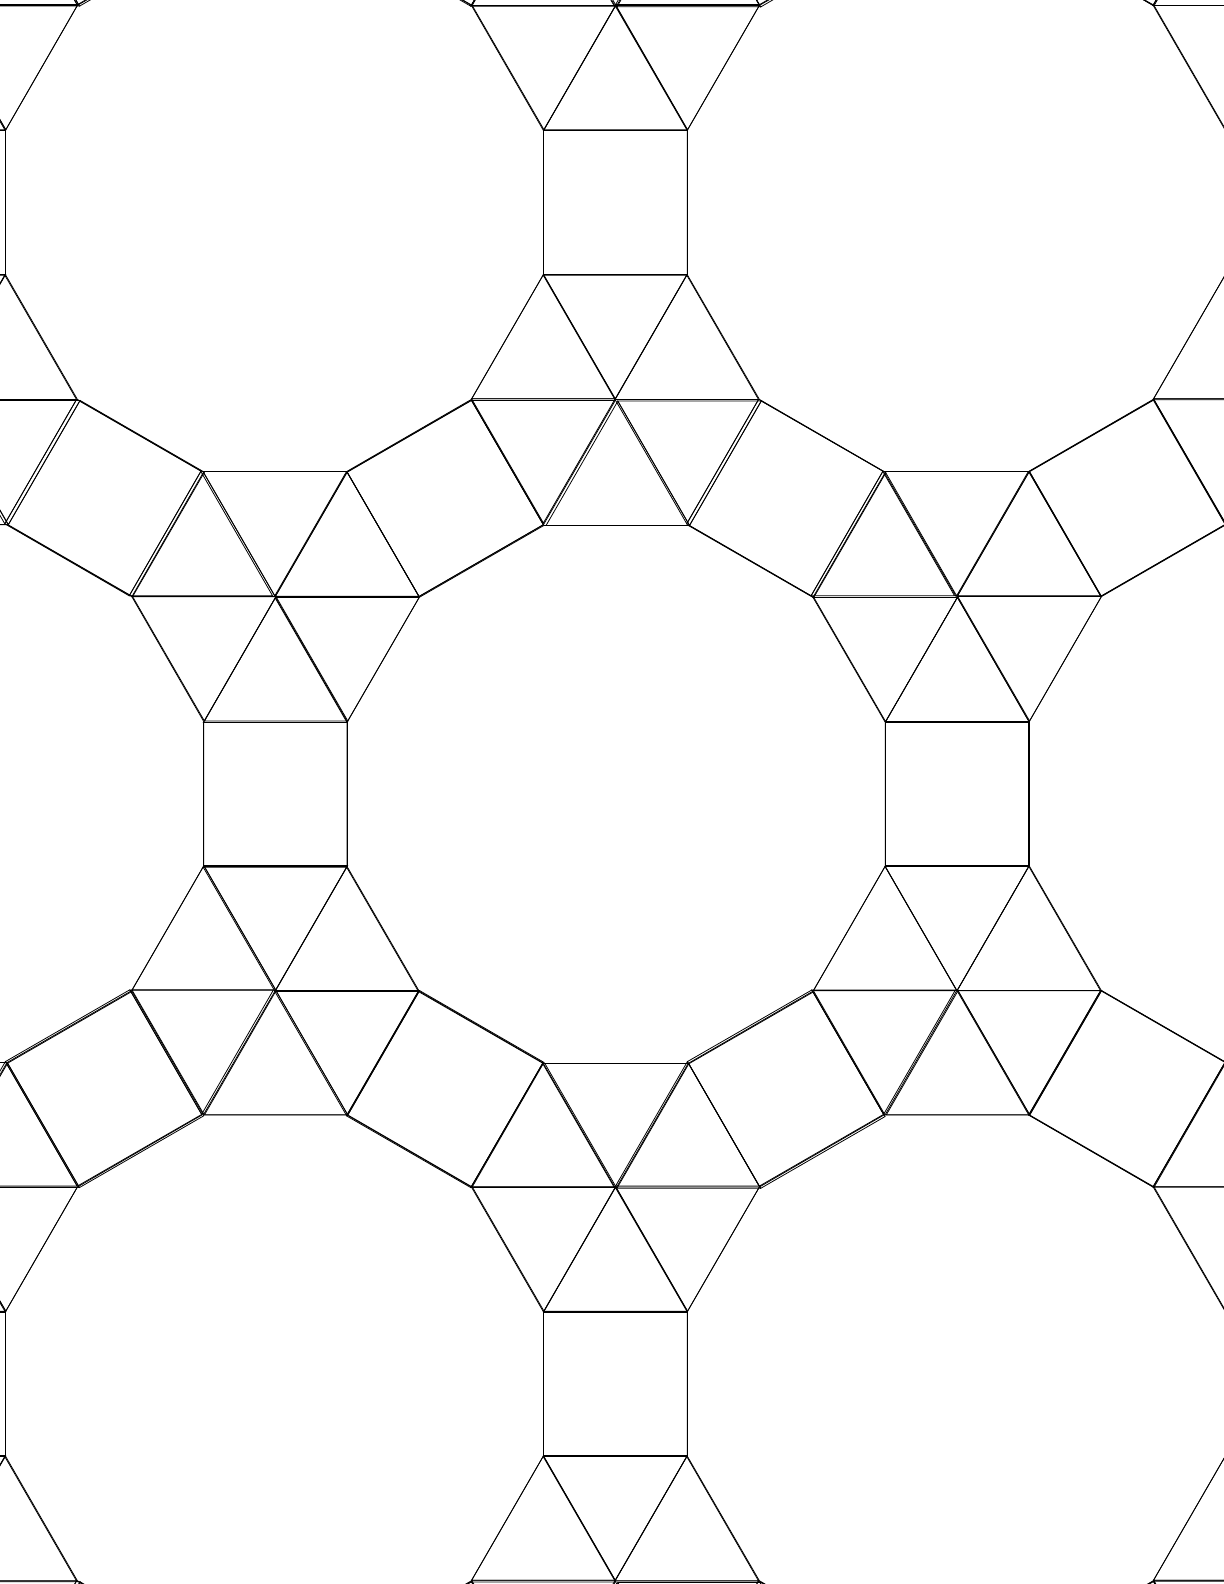 Tessellation Graph Paper (3.3.3.3.3,3.3.4.12) Free Download